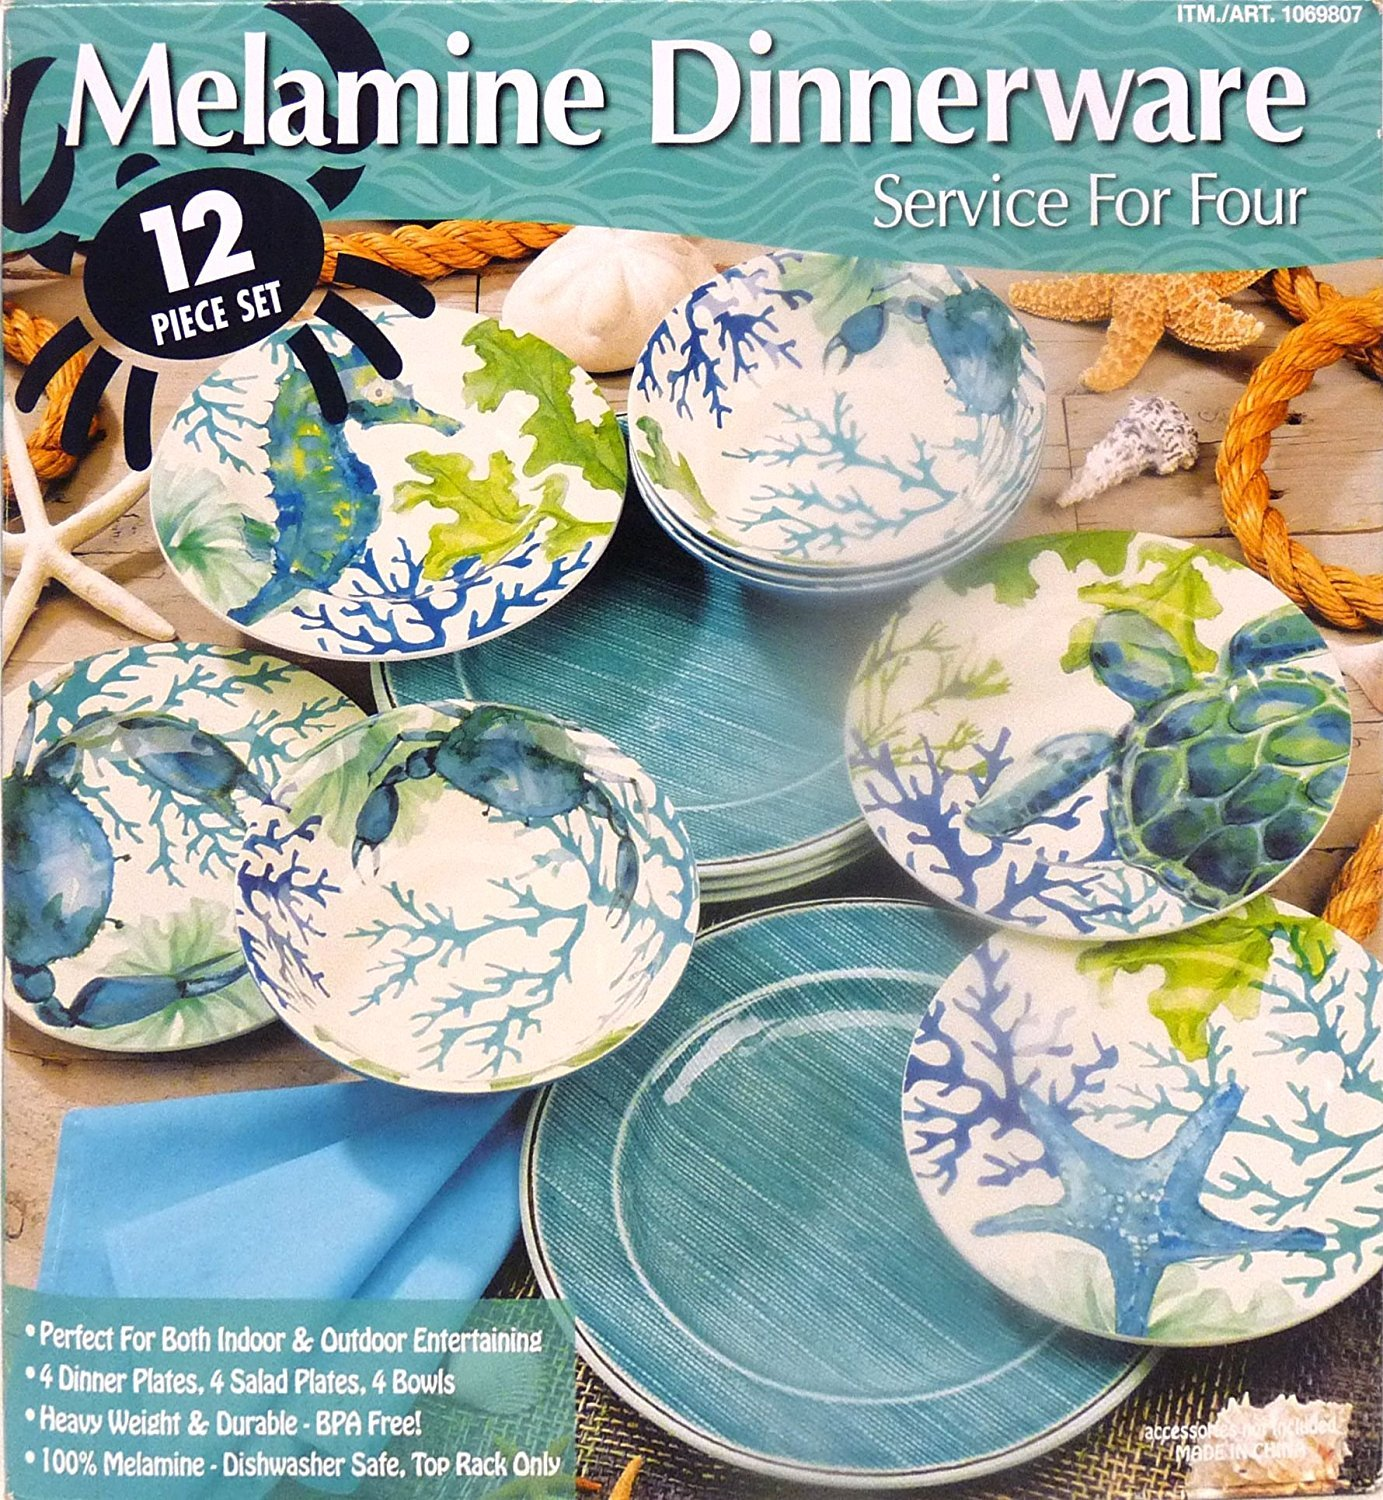 Amazon.com | Melamine Dinnerware 12 Piece Set - Aquamarine #1069807 Dinnerware Sets  sc 1 st  Amazon.com & Amazon.com | Melamine Dinnerware 12 Piece Set - Aquamarine #1069807 ...